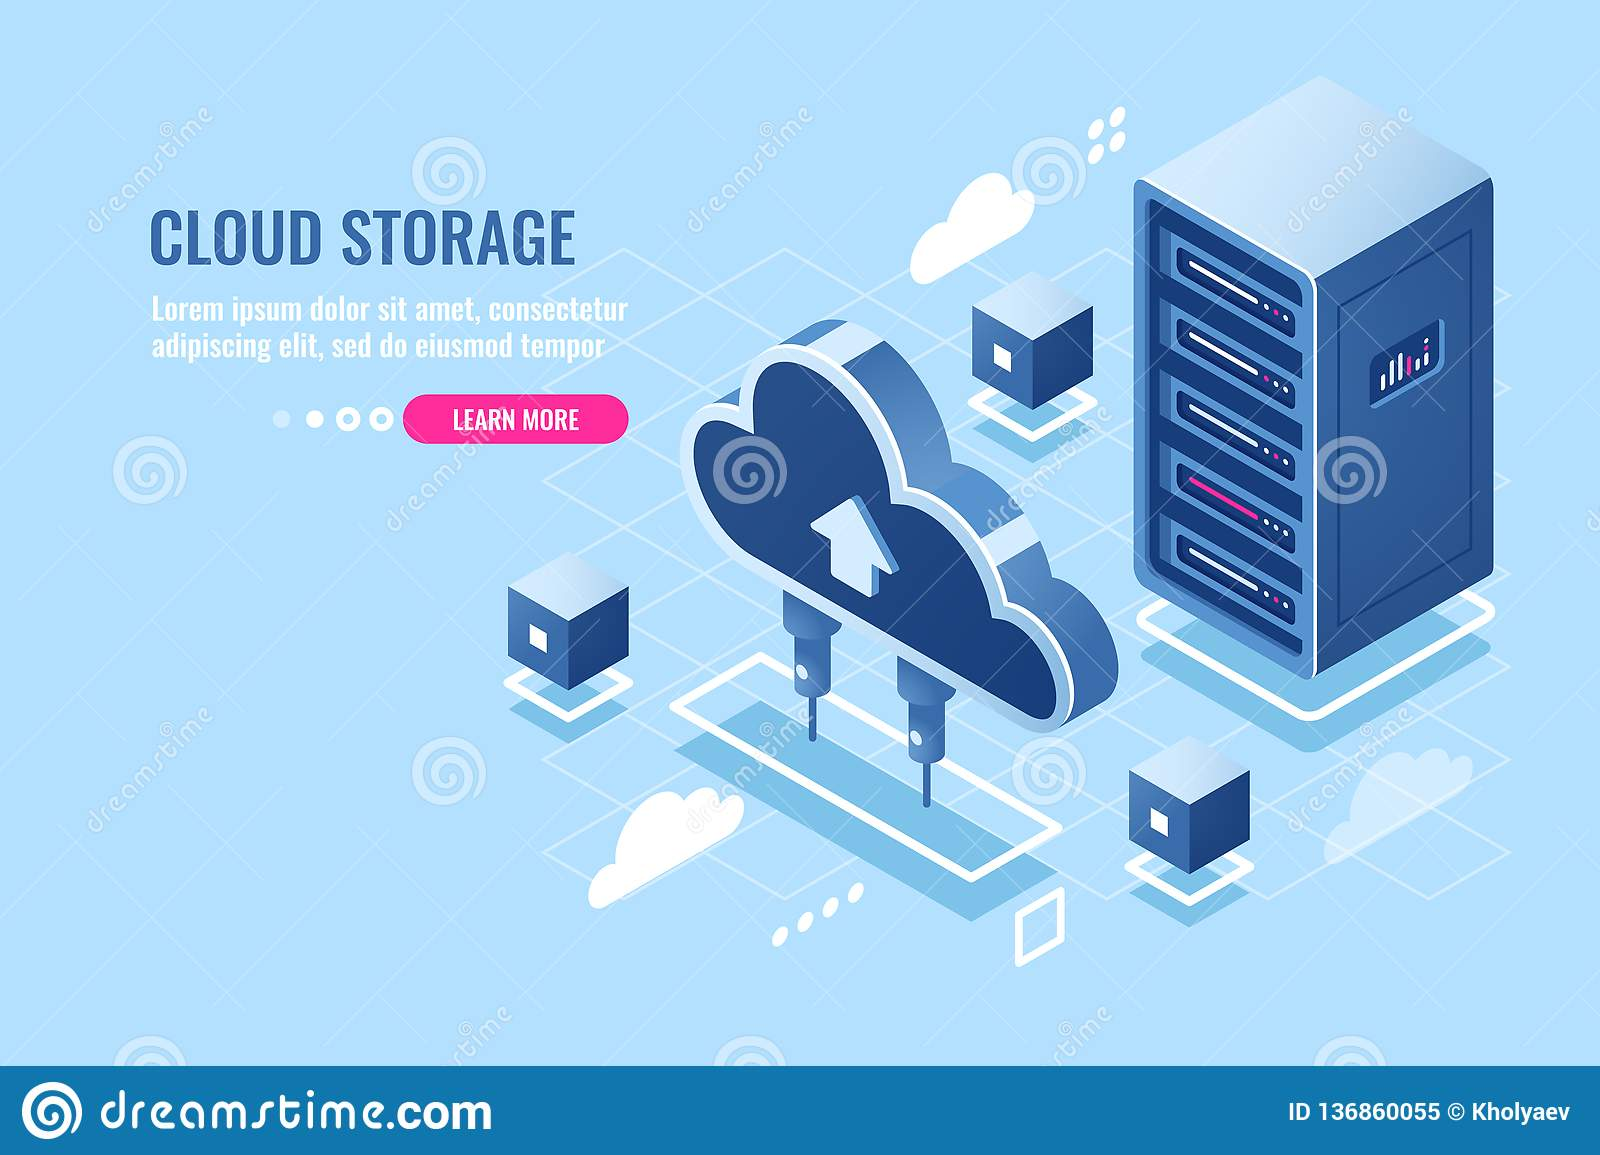 Technology of cloud data storage, server room rack, database and data center isometric icon, abstract concept, download